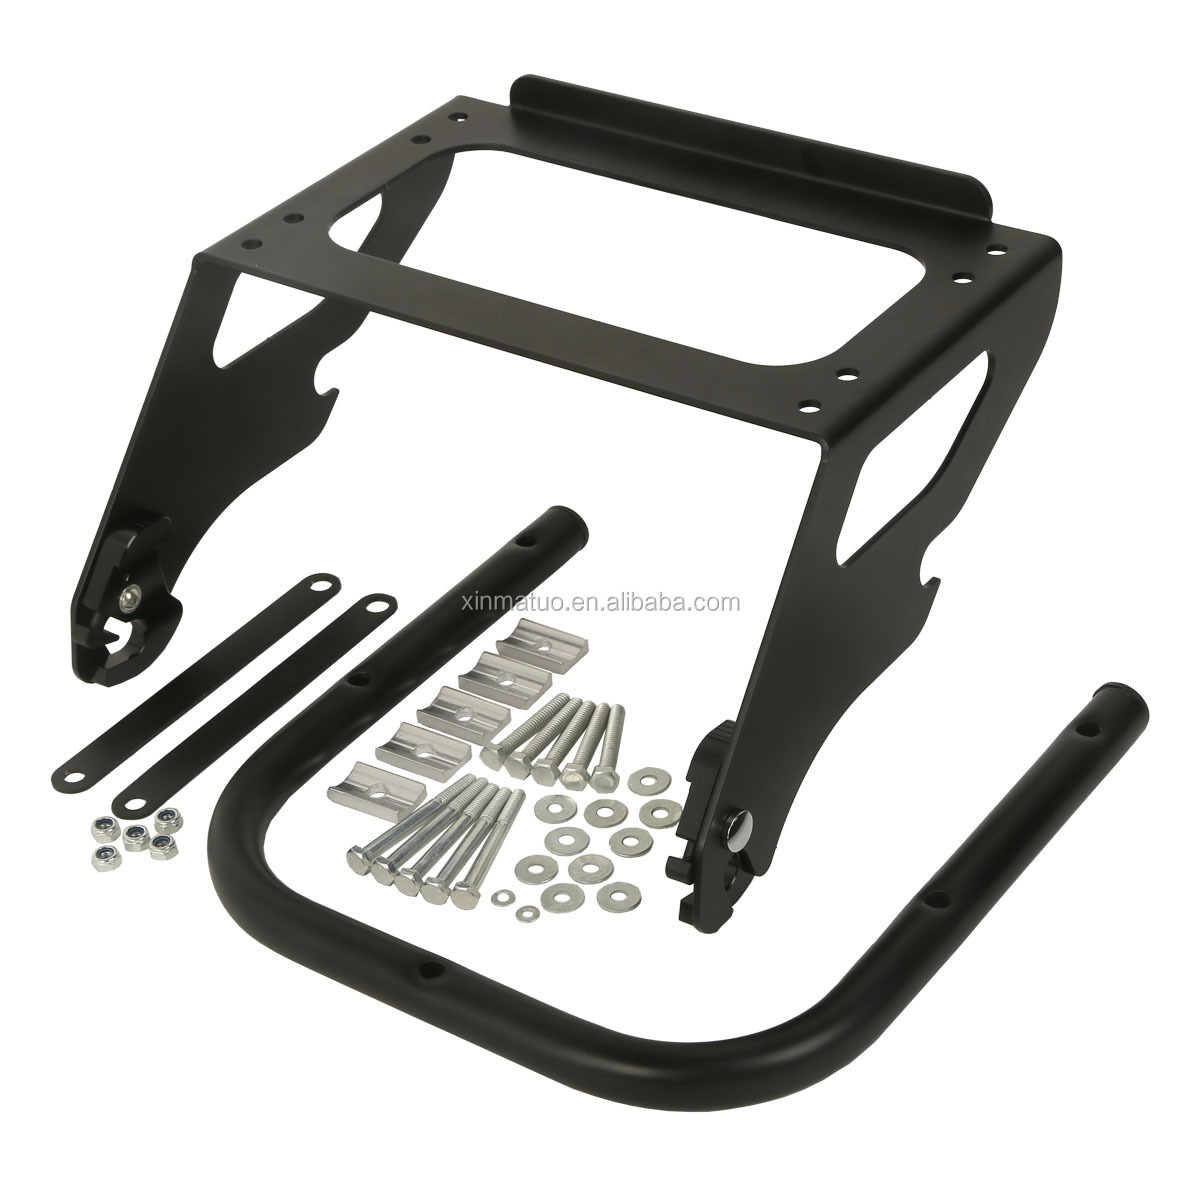 XMT290697-01-B Motorcycle parts New Detachable Black Solo Tour Pak Luggage Rack ForTouring Glide China factory